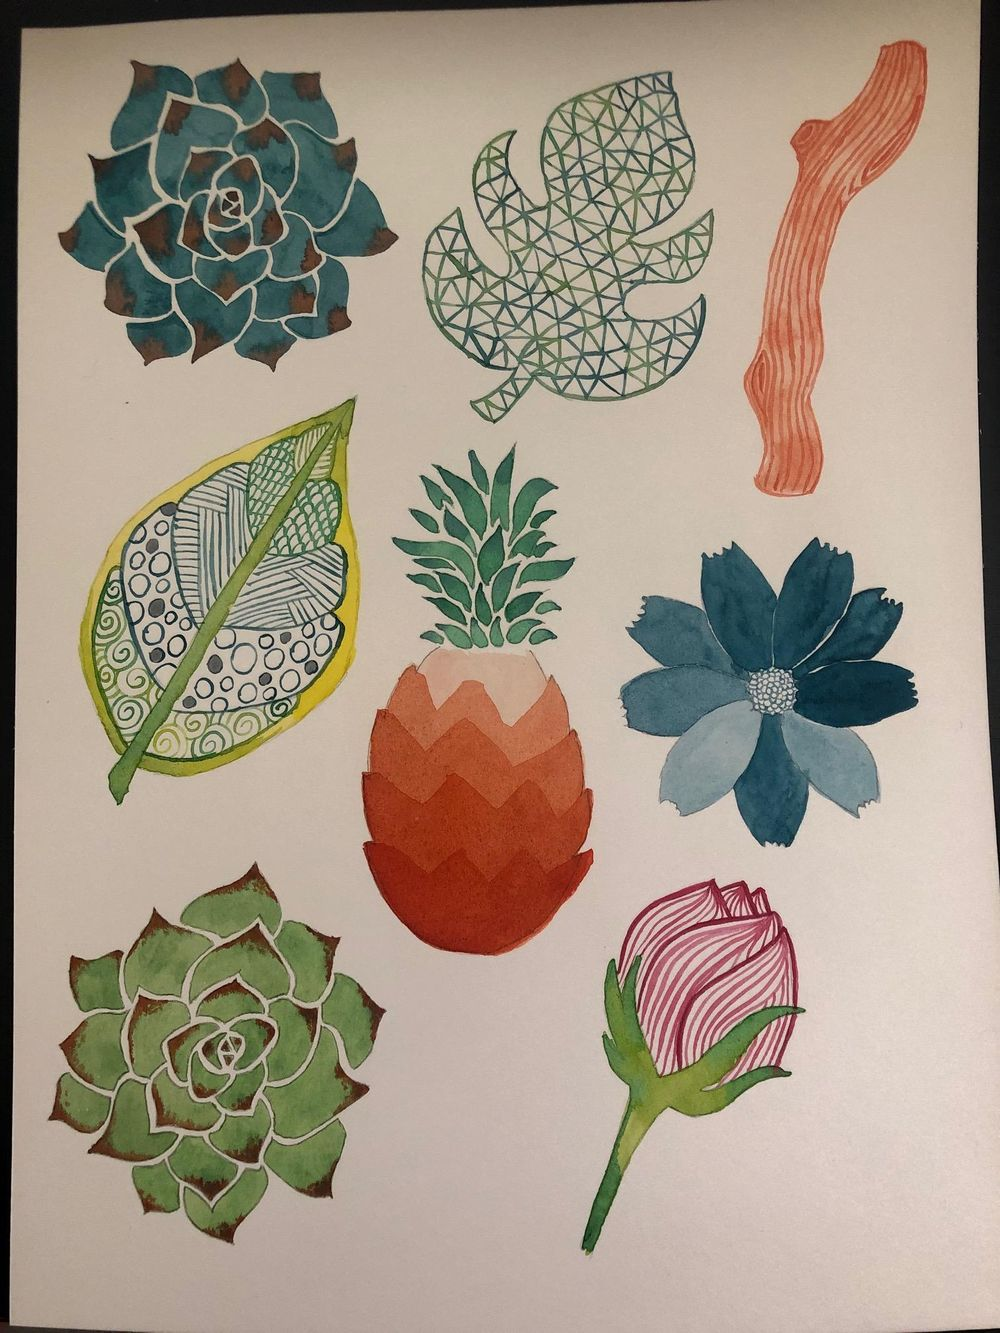 Watercolor exercises - image 7 - student project